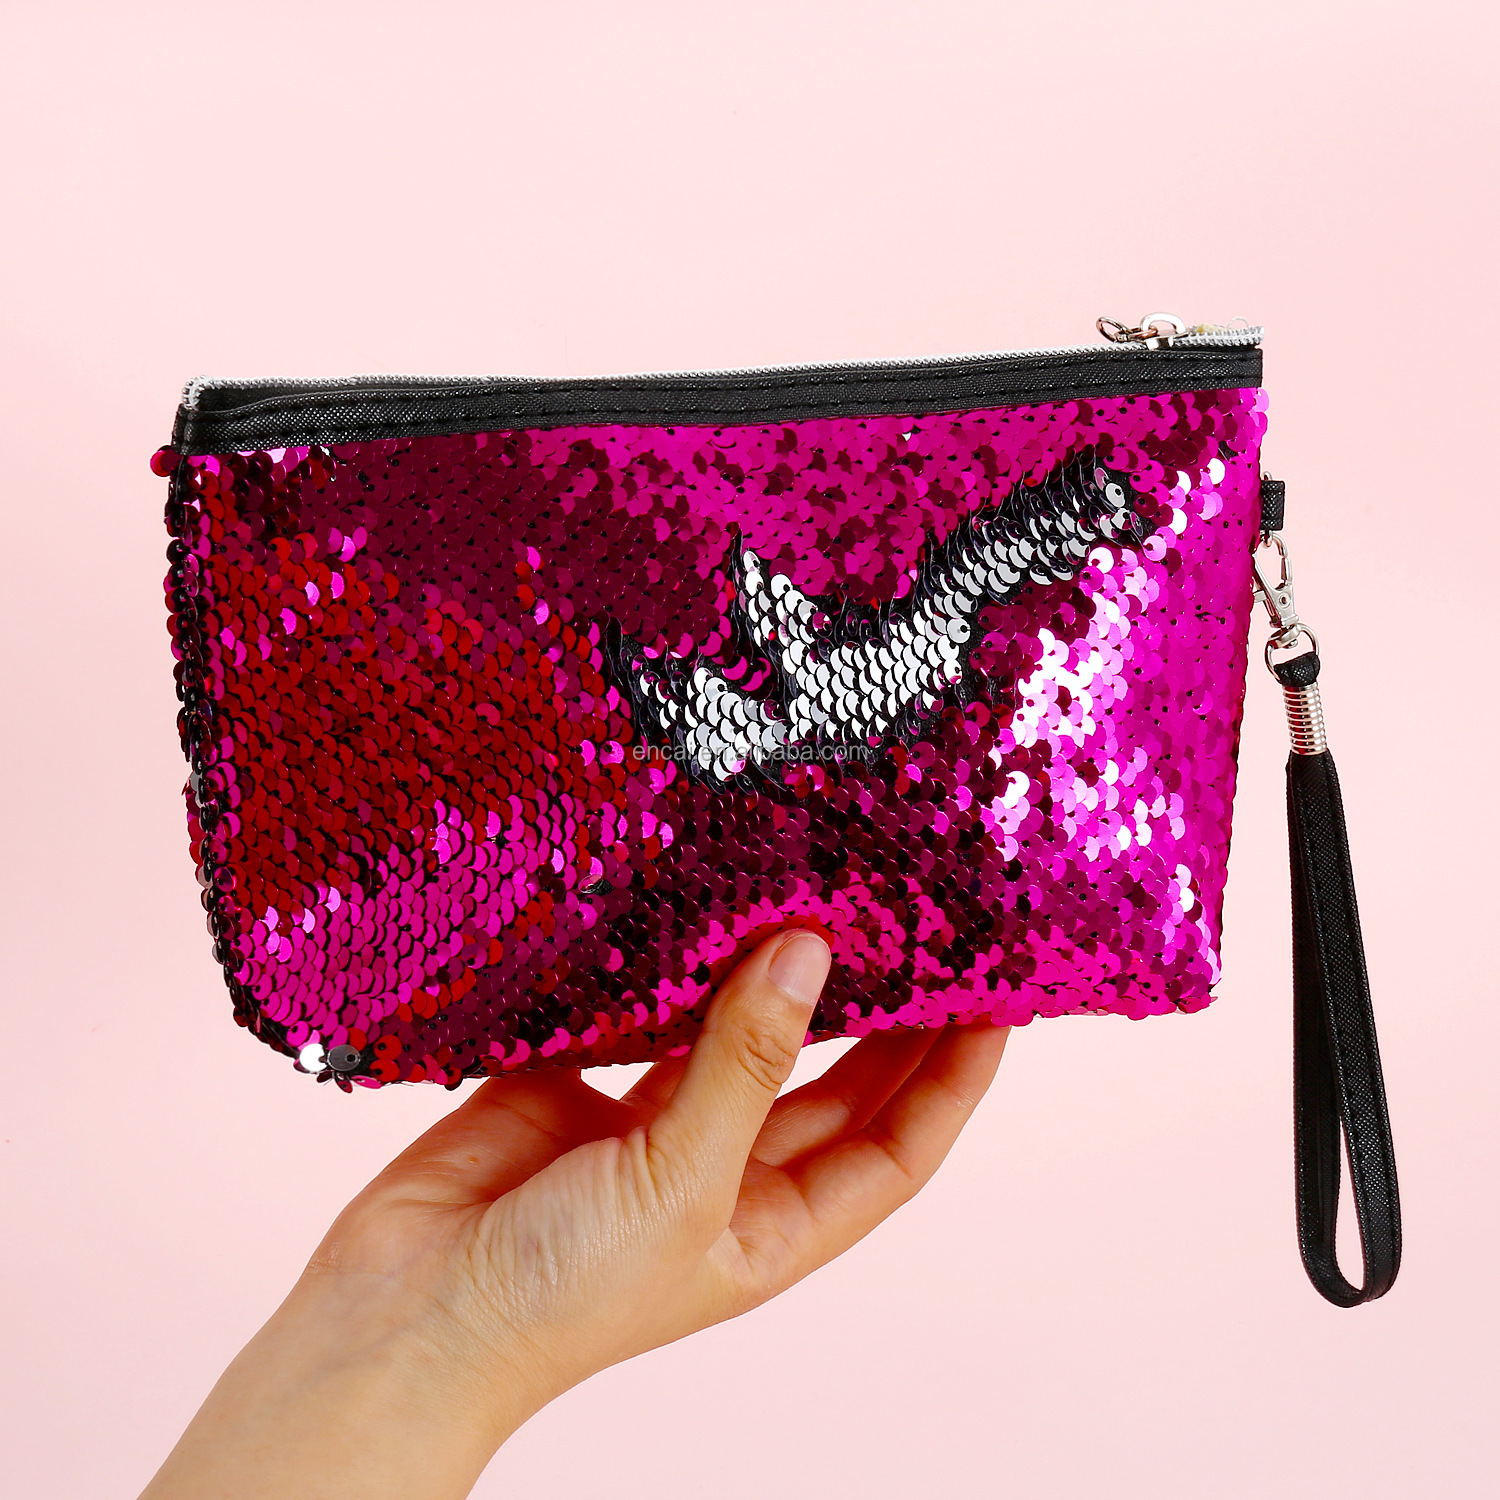 Encai Glittering Paillette Clutch Bag Reversible Mermaid Sequins Cosmetic Organizer Bag With Wrist Strap